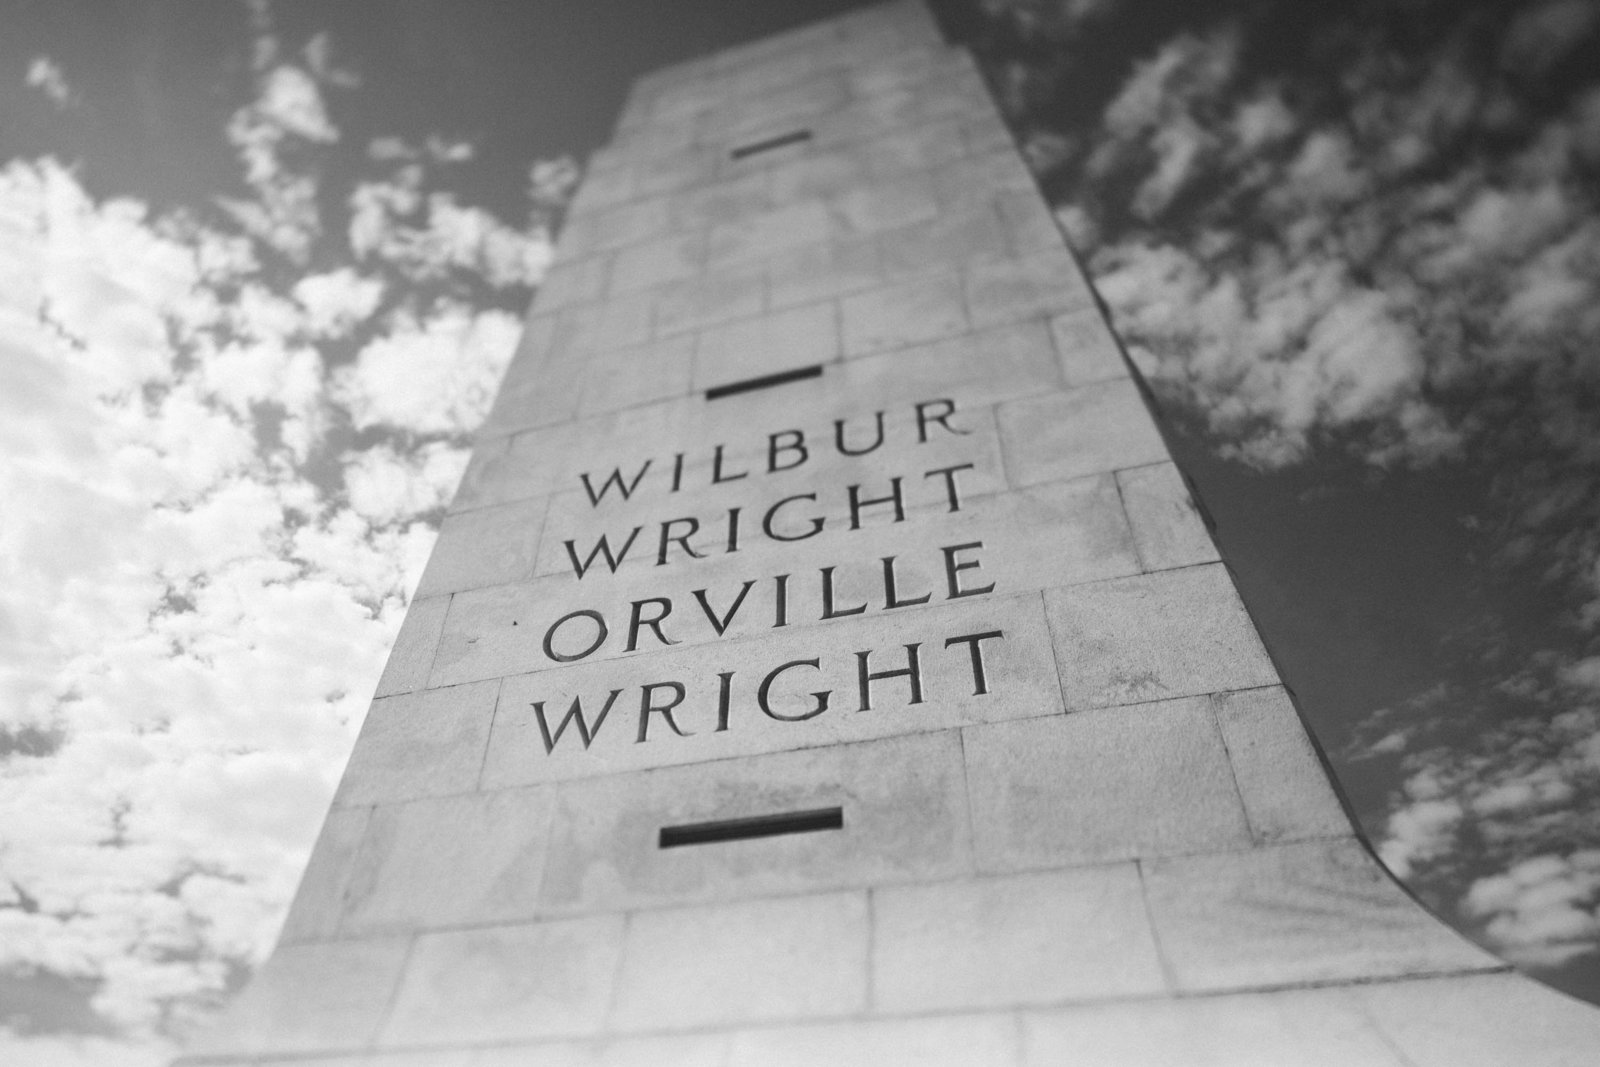 monument-wright-brothers-national-memorial-nc-kate-timbers-photography-1620